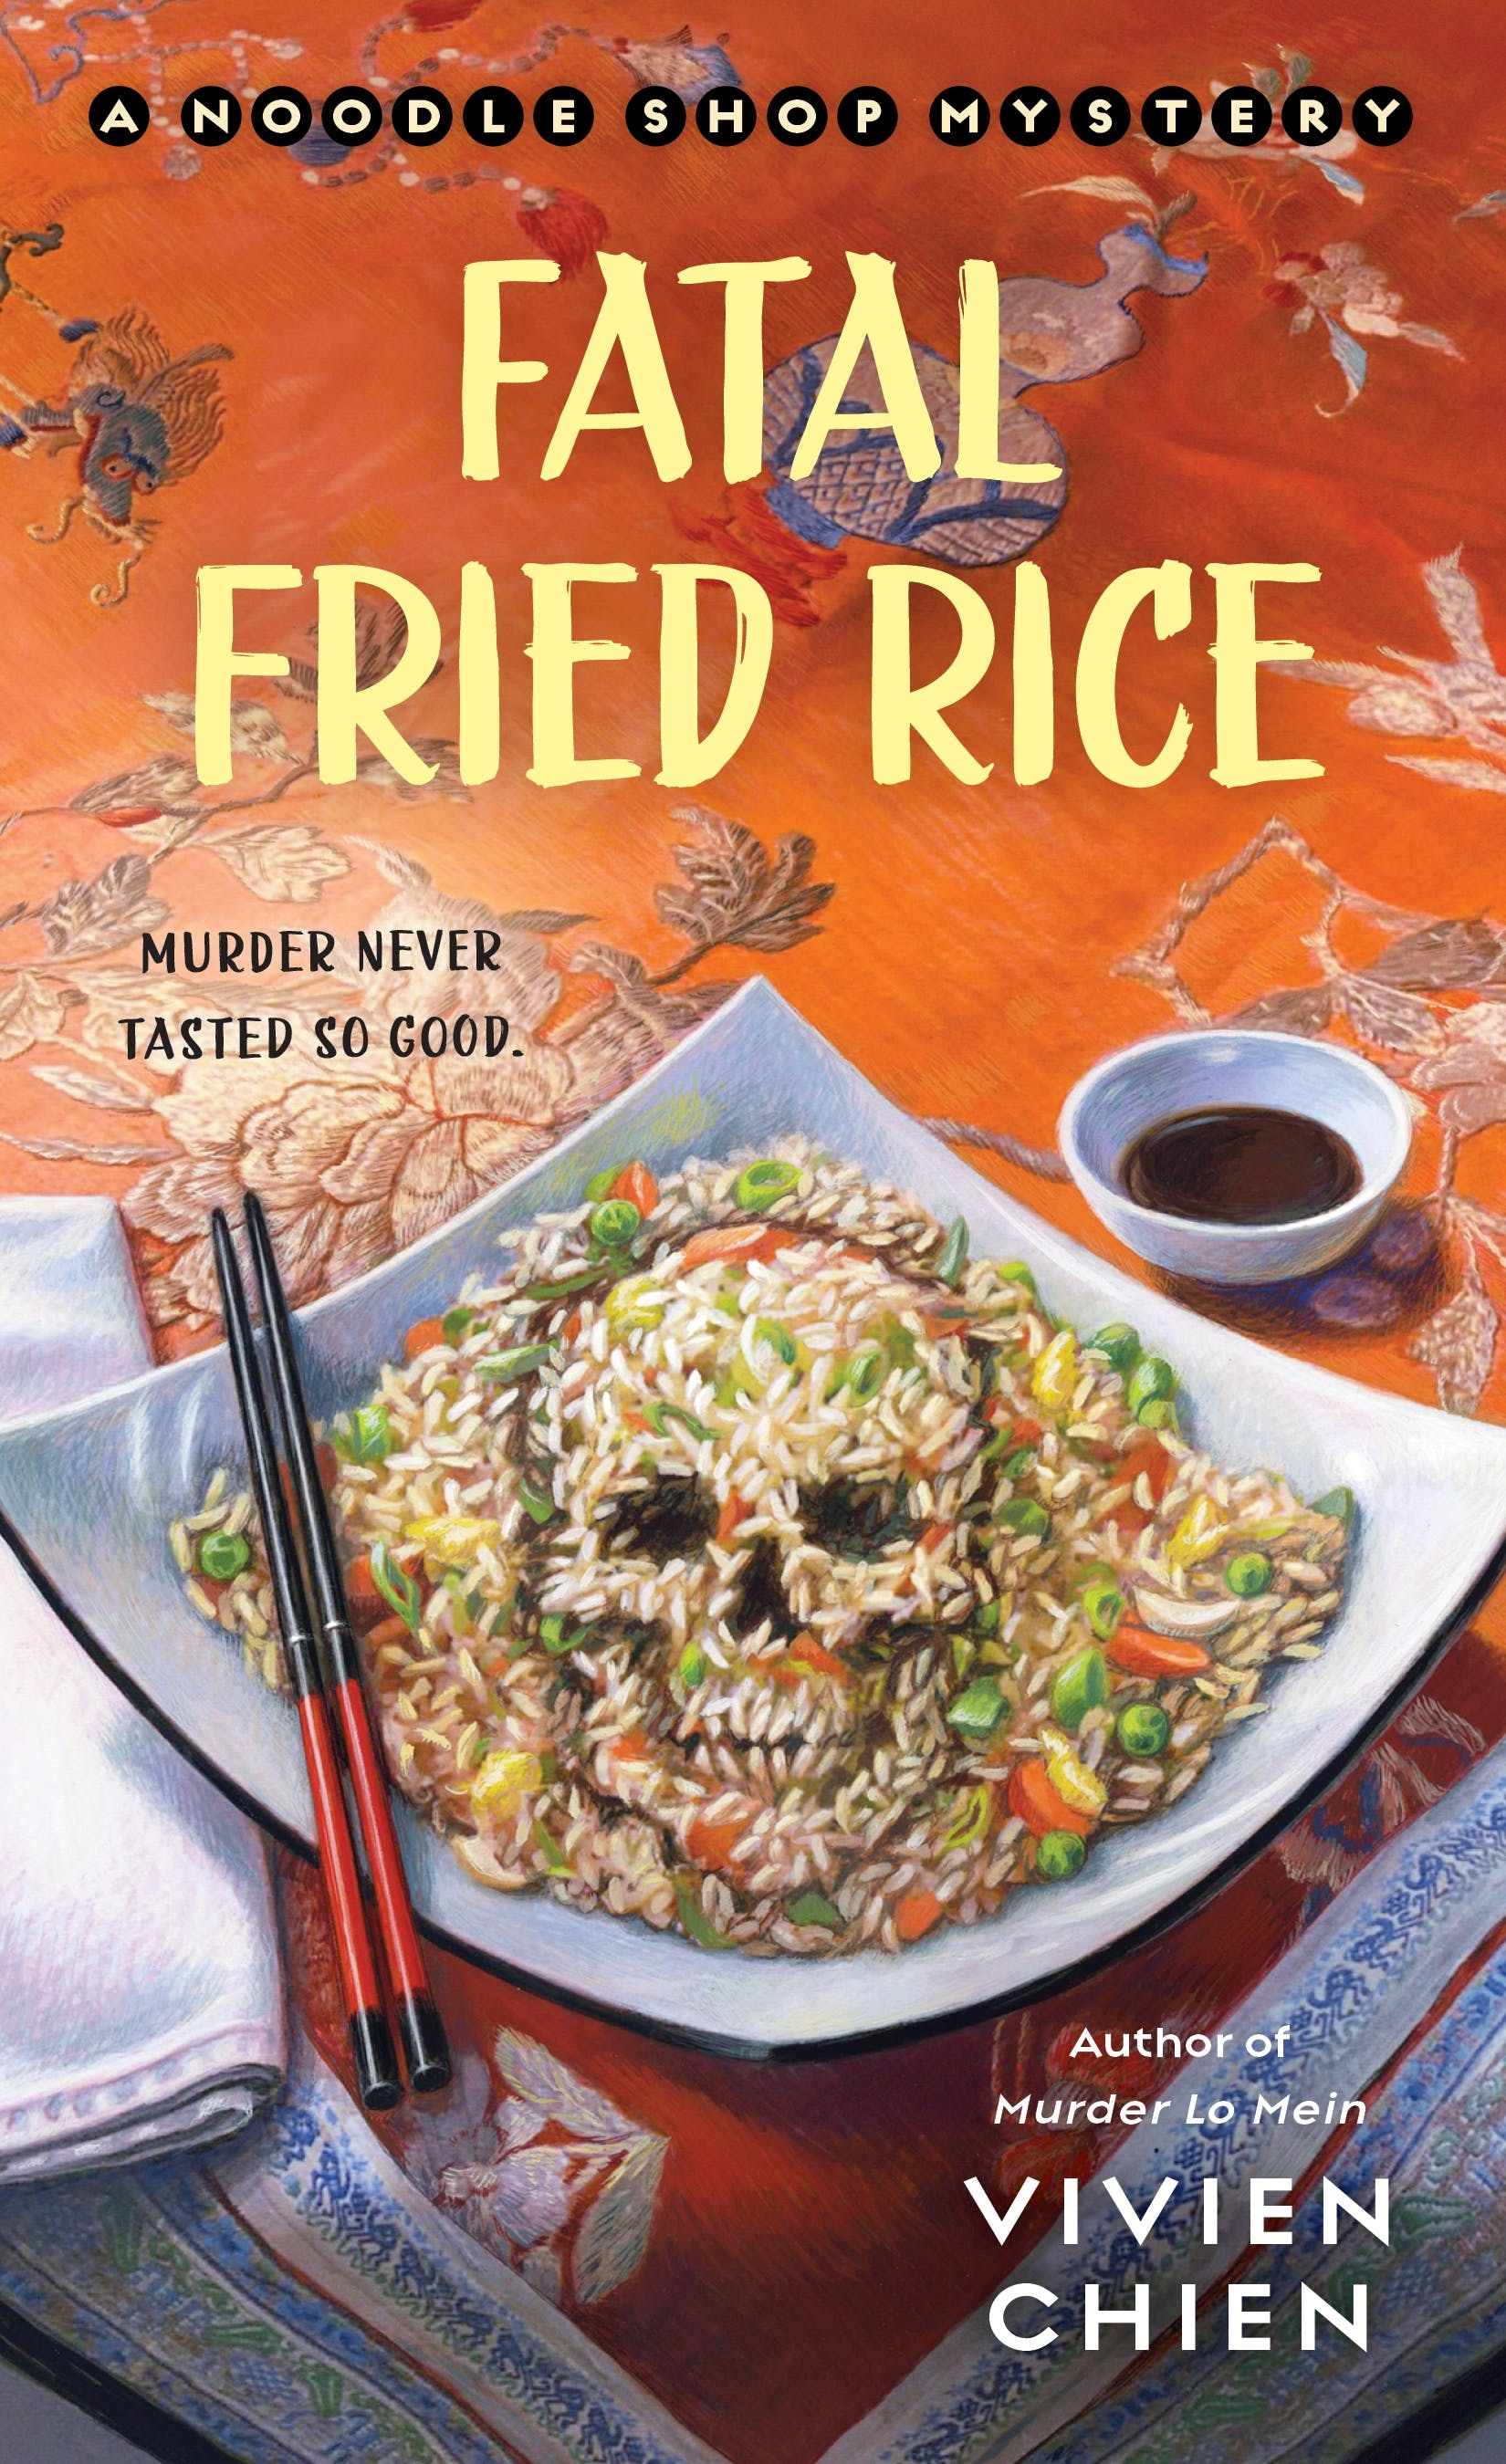 Image of Fatal Fried Rice